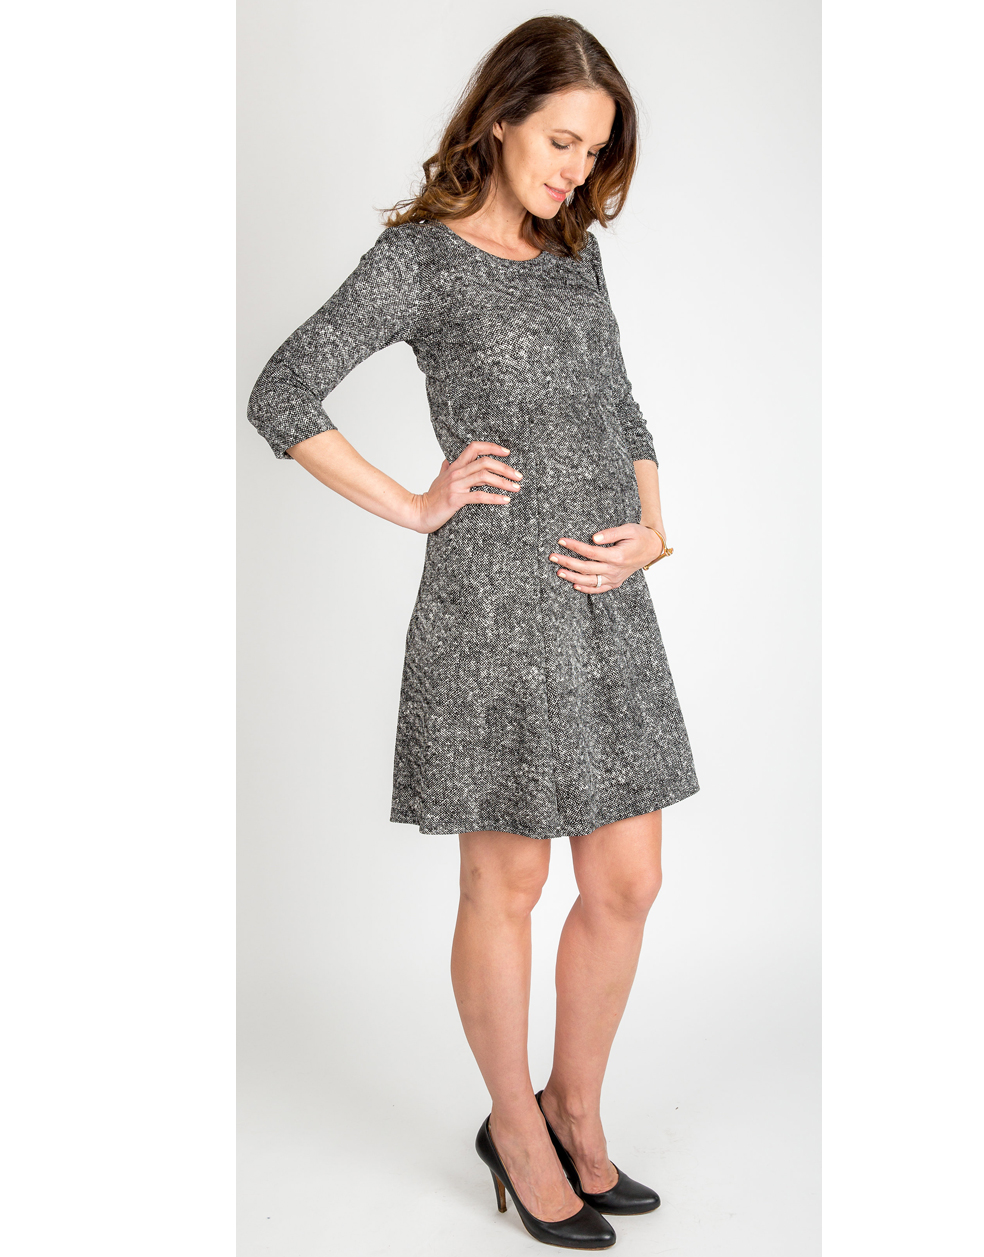 74b7d4b6006e7 Maternity Clothes Rental | Affordable Pregnancy Wear & Dress Clothes